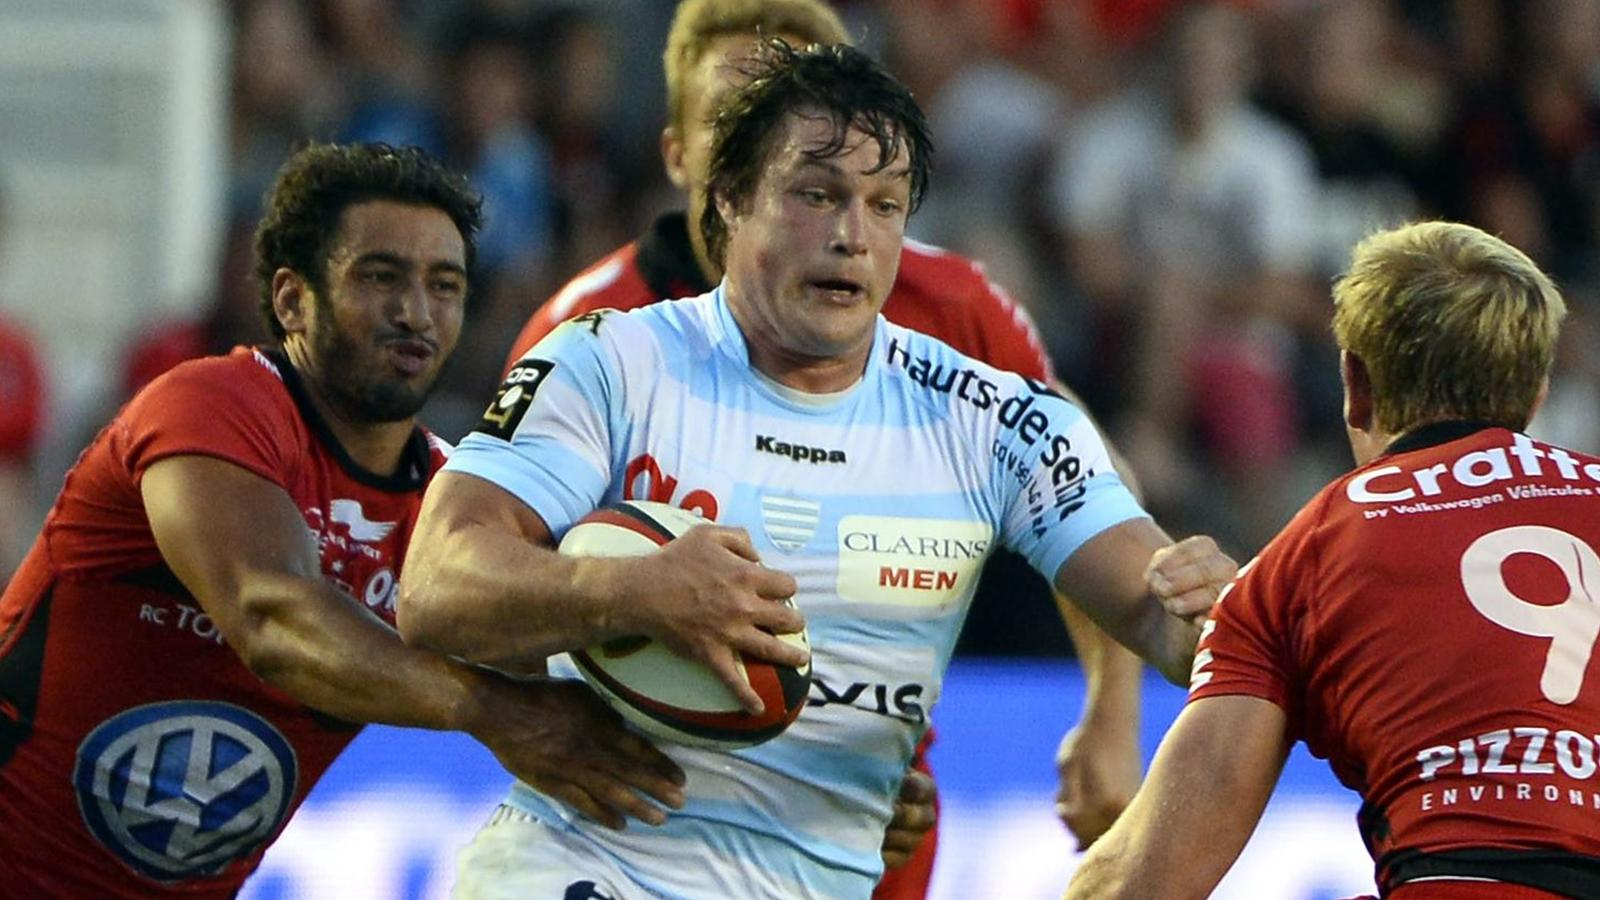 match rugby top 14 racing metro 92 vs toulon en direct streaming sur canal sport partir de. Black Bedroom Furniture Sets. Home Design Ideas